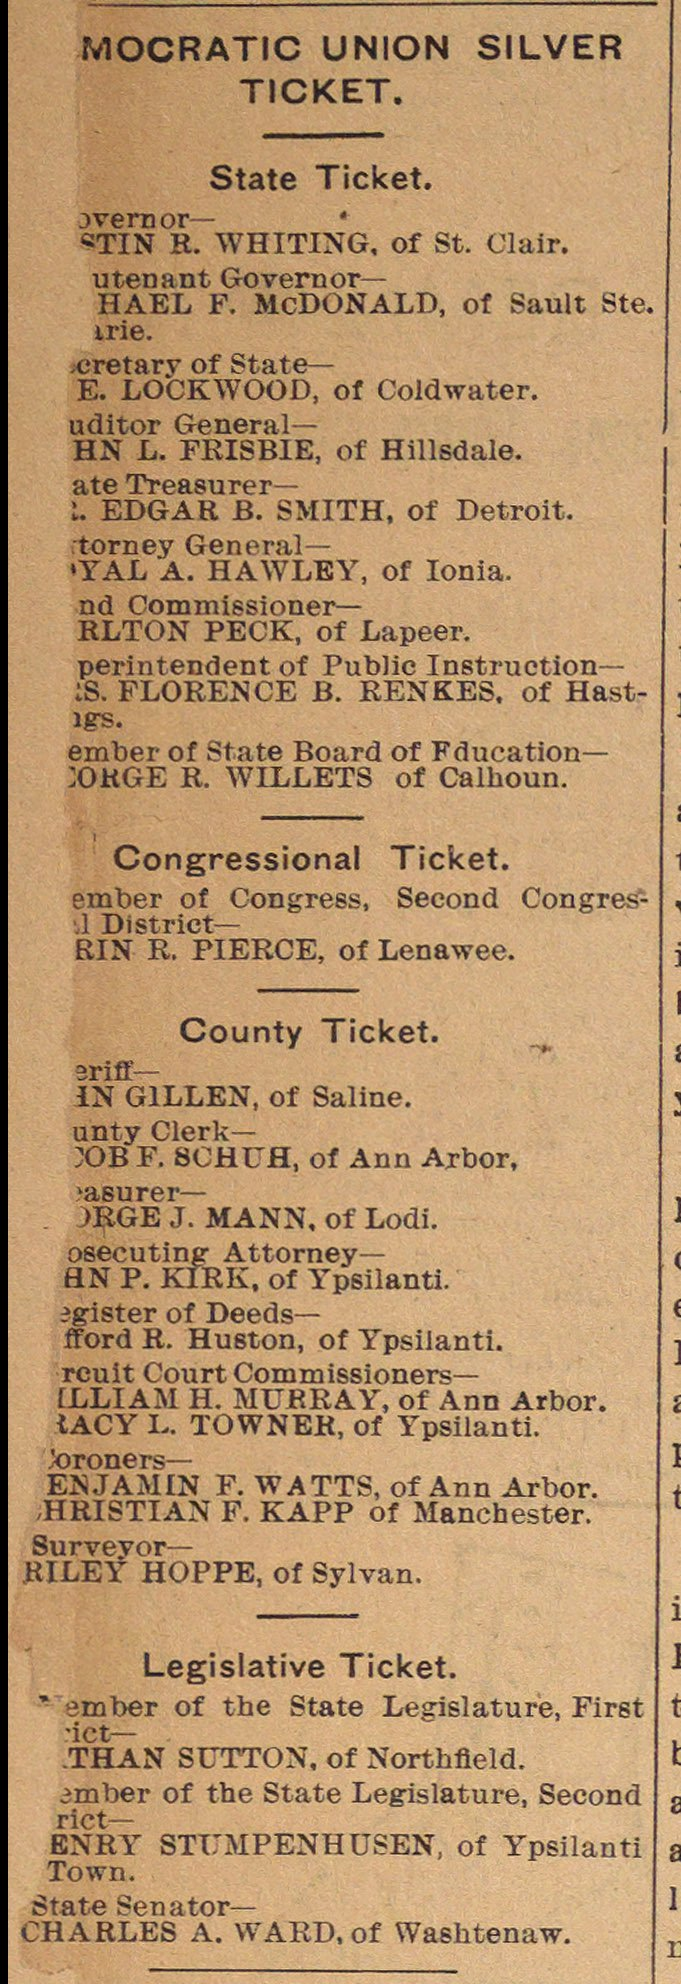 Democratic Union Silver Ticket image